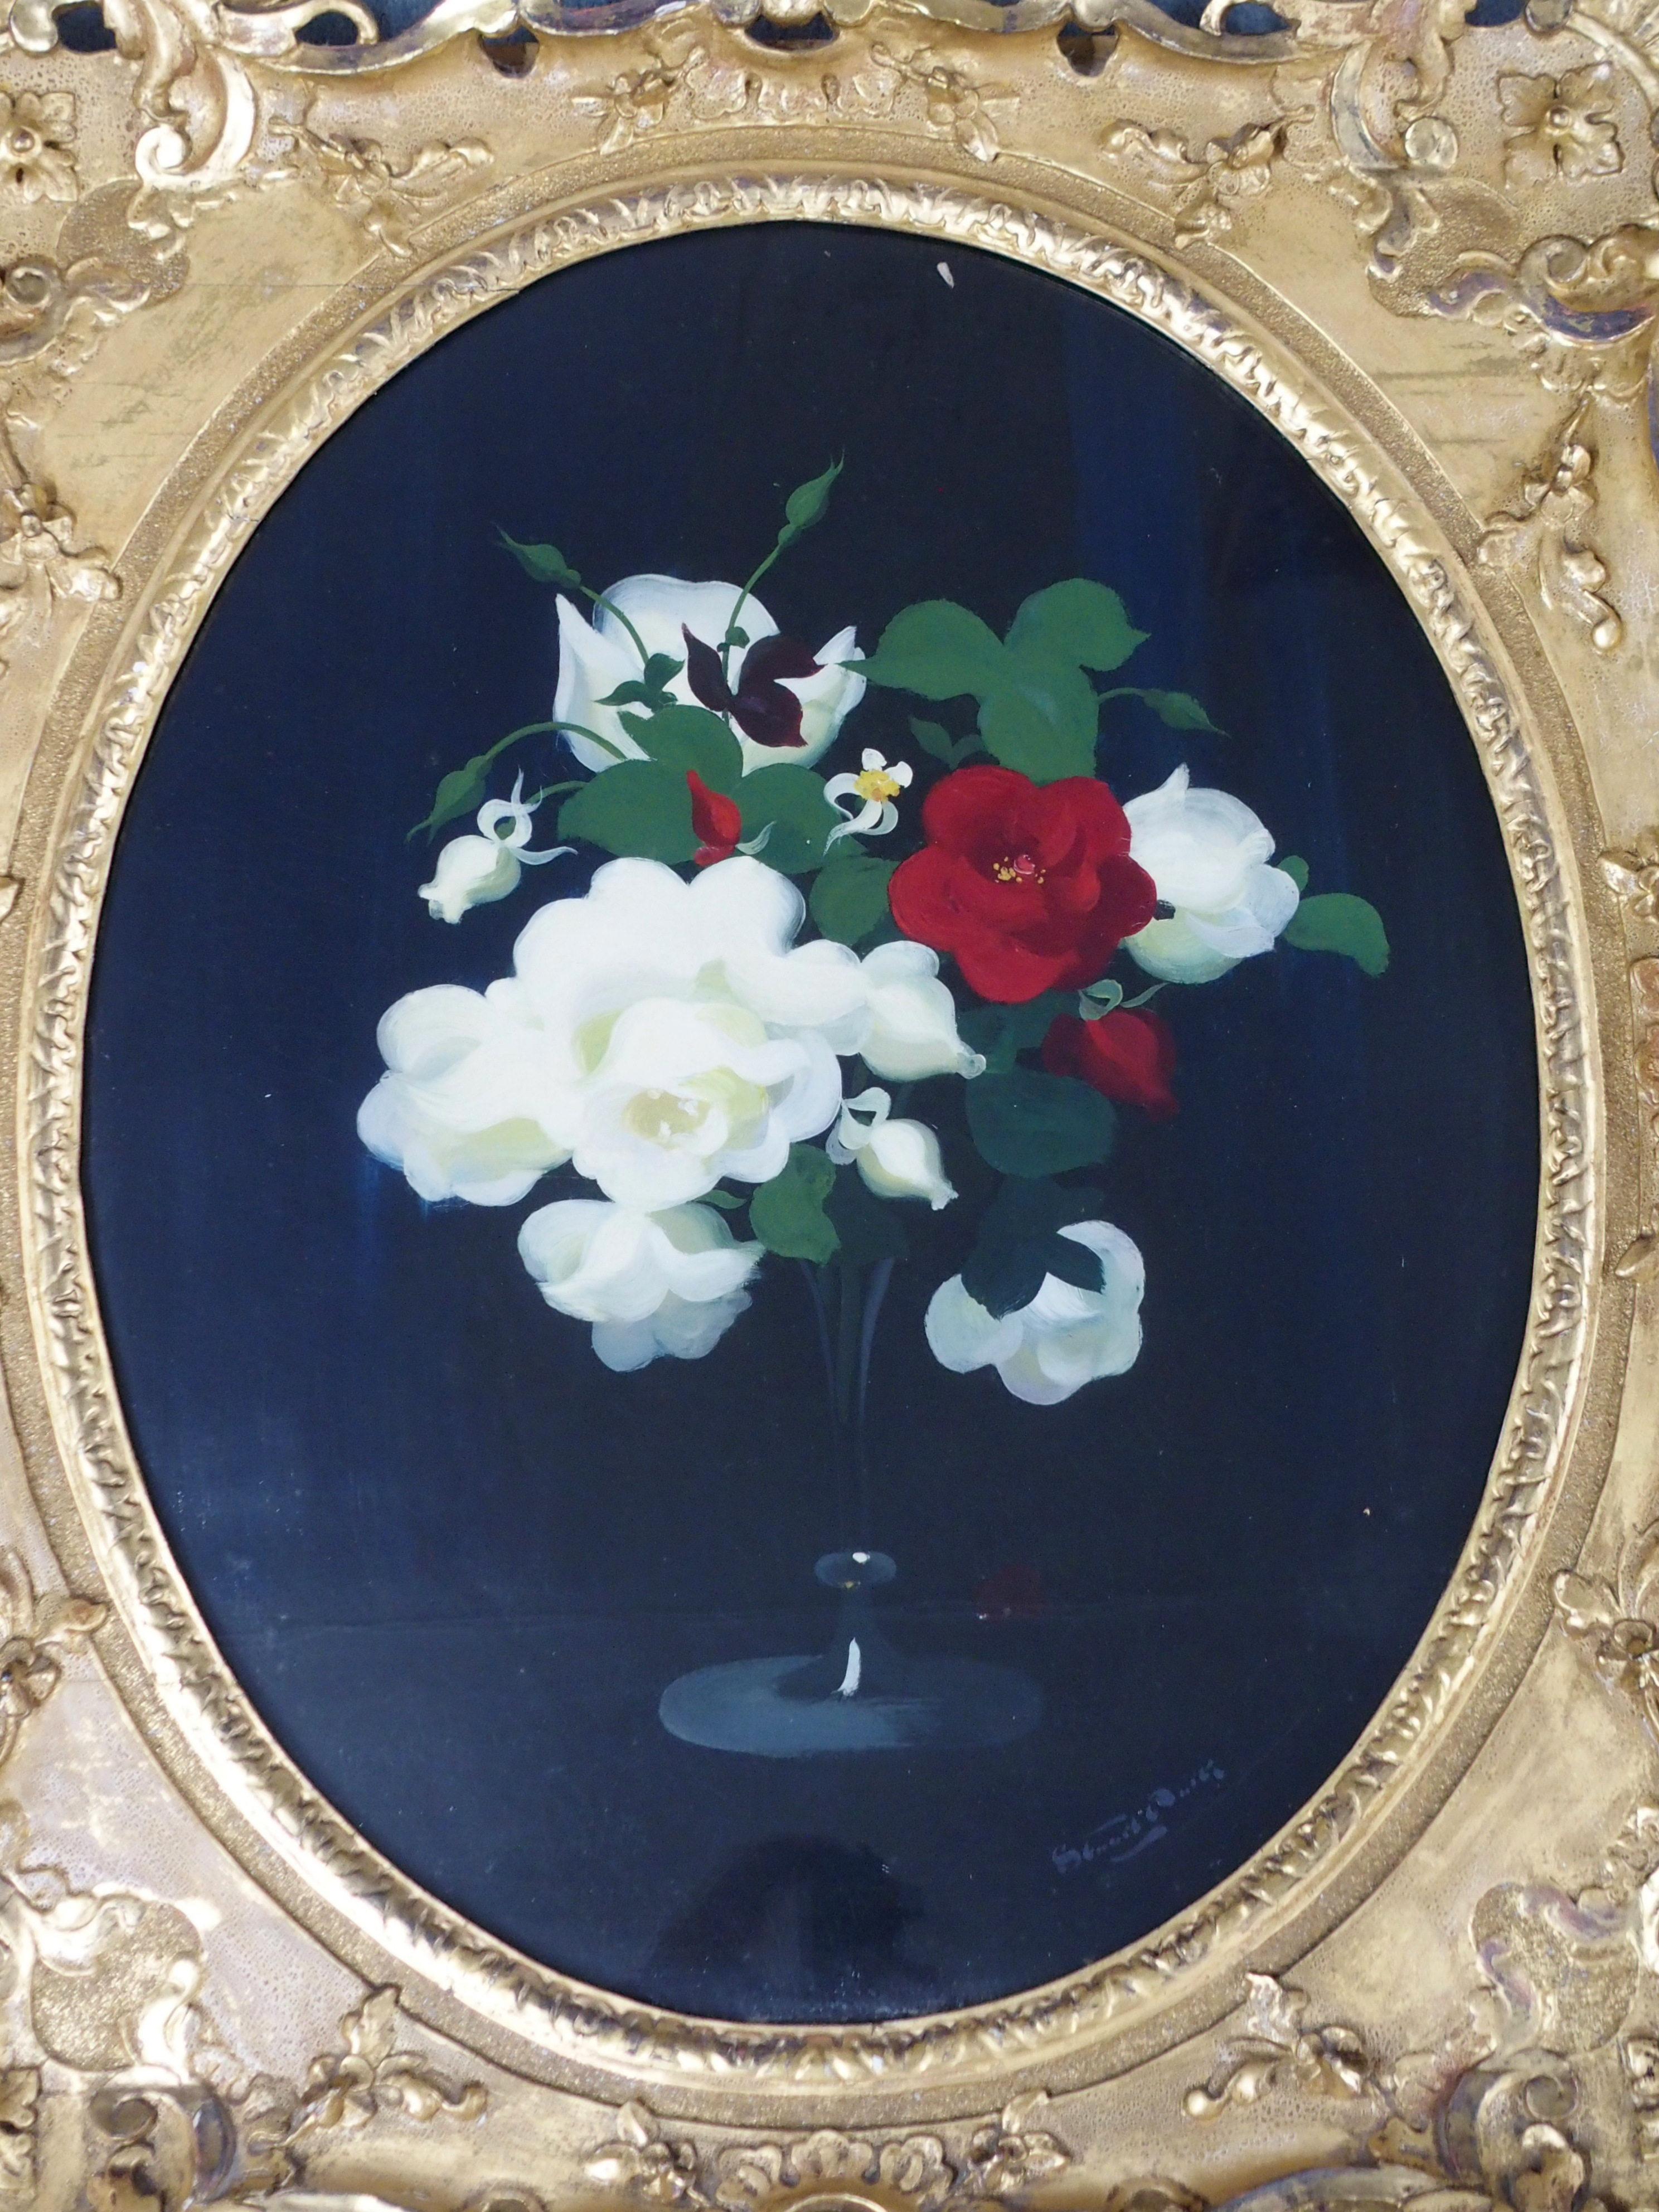 JAMES STUART PARK (SCOTTISH 1862-1933) MIXED ROSES oil on canvas, signed, 74 x 58cm Inscribed on